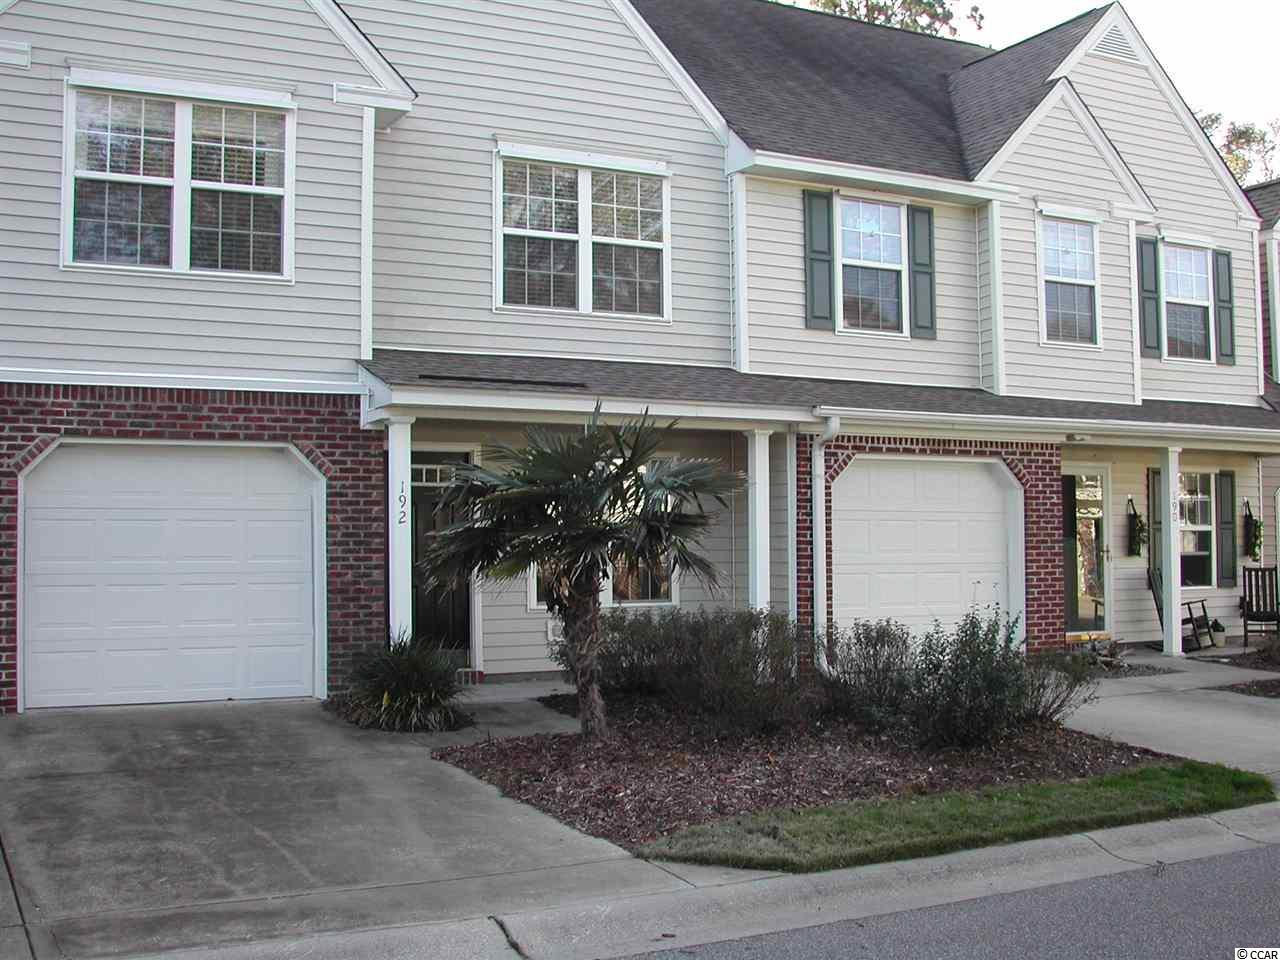 Furnished 2 bedroom, 2 1/2 bath, townhome in great location, centrally located in Pawleys , close to shops, restaurants and numerous golf courses. Large loft for office or guests, private patio area, and garage. This is a one owner, and used as a second home, never rented, community pool, and overflow parking across the street. Schedule appointment to show as unit is occupied thru 1/19th...